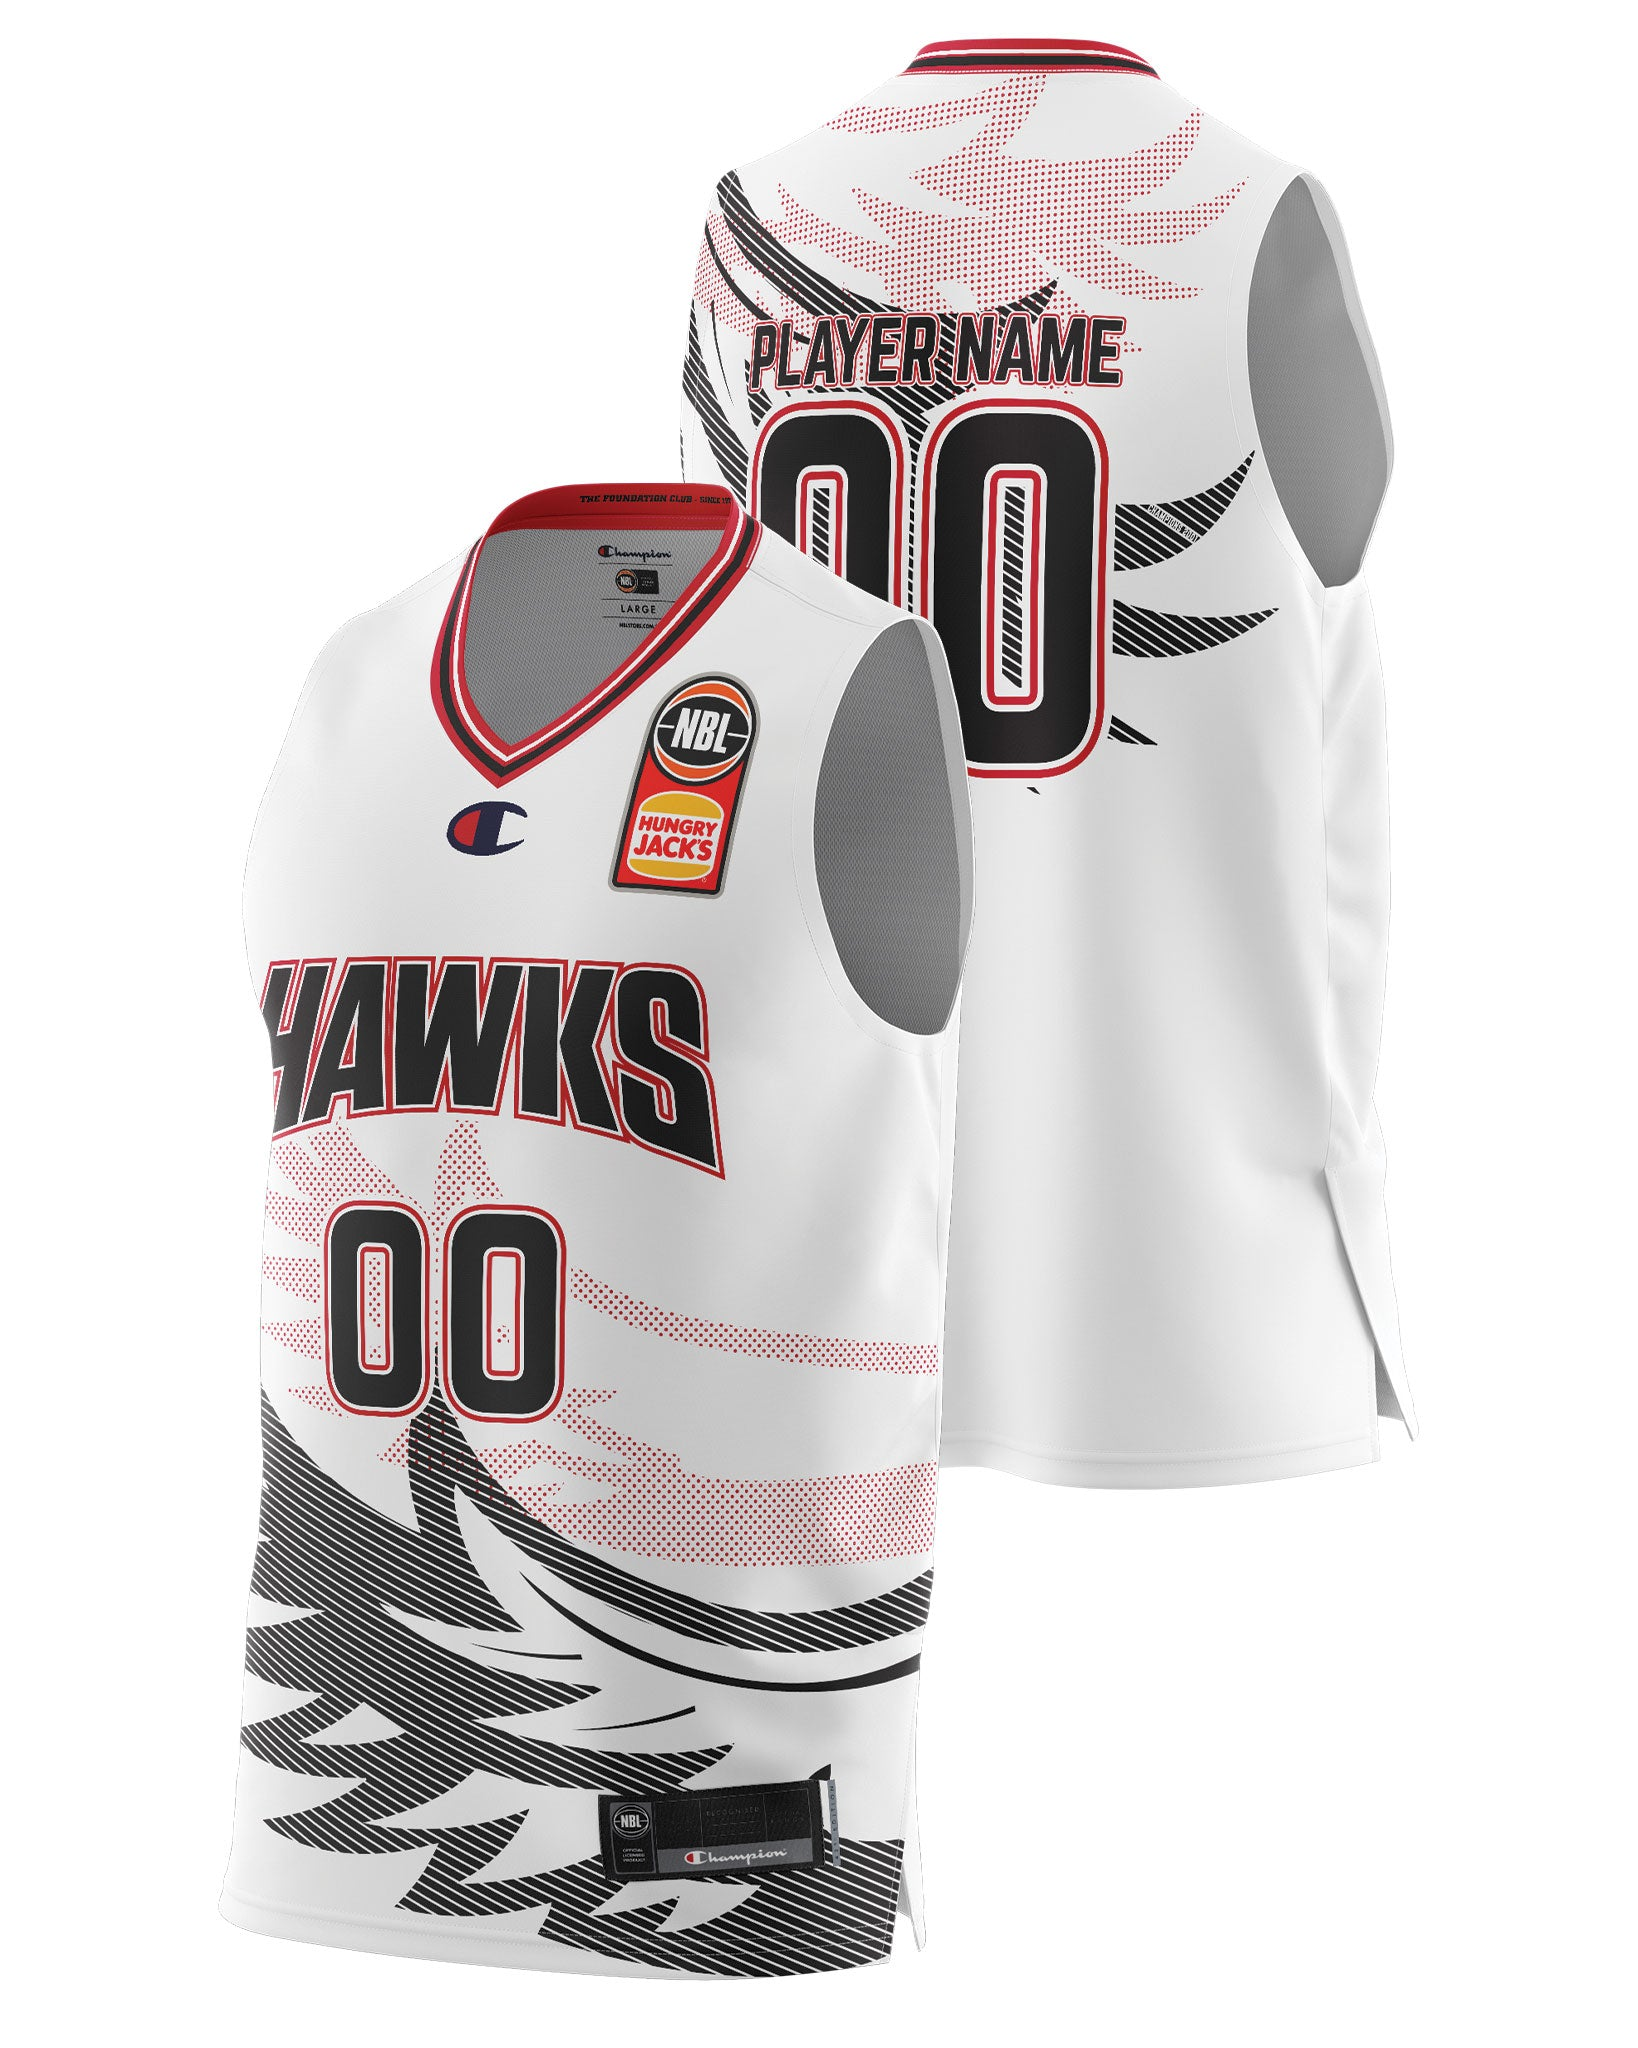 Hawks 20/21 Authentic Away Jersey - Other Players